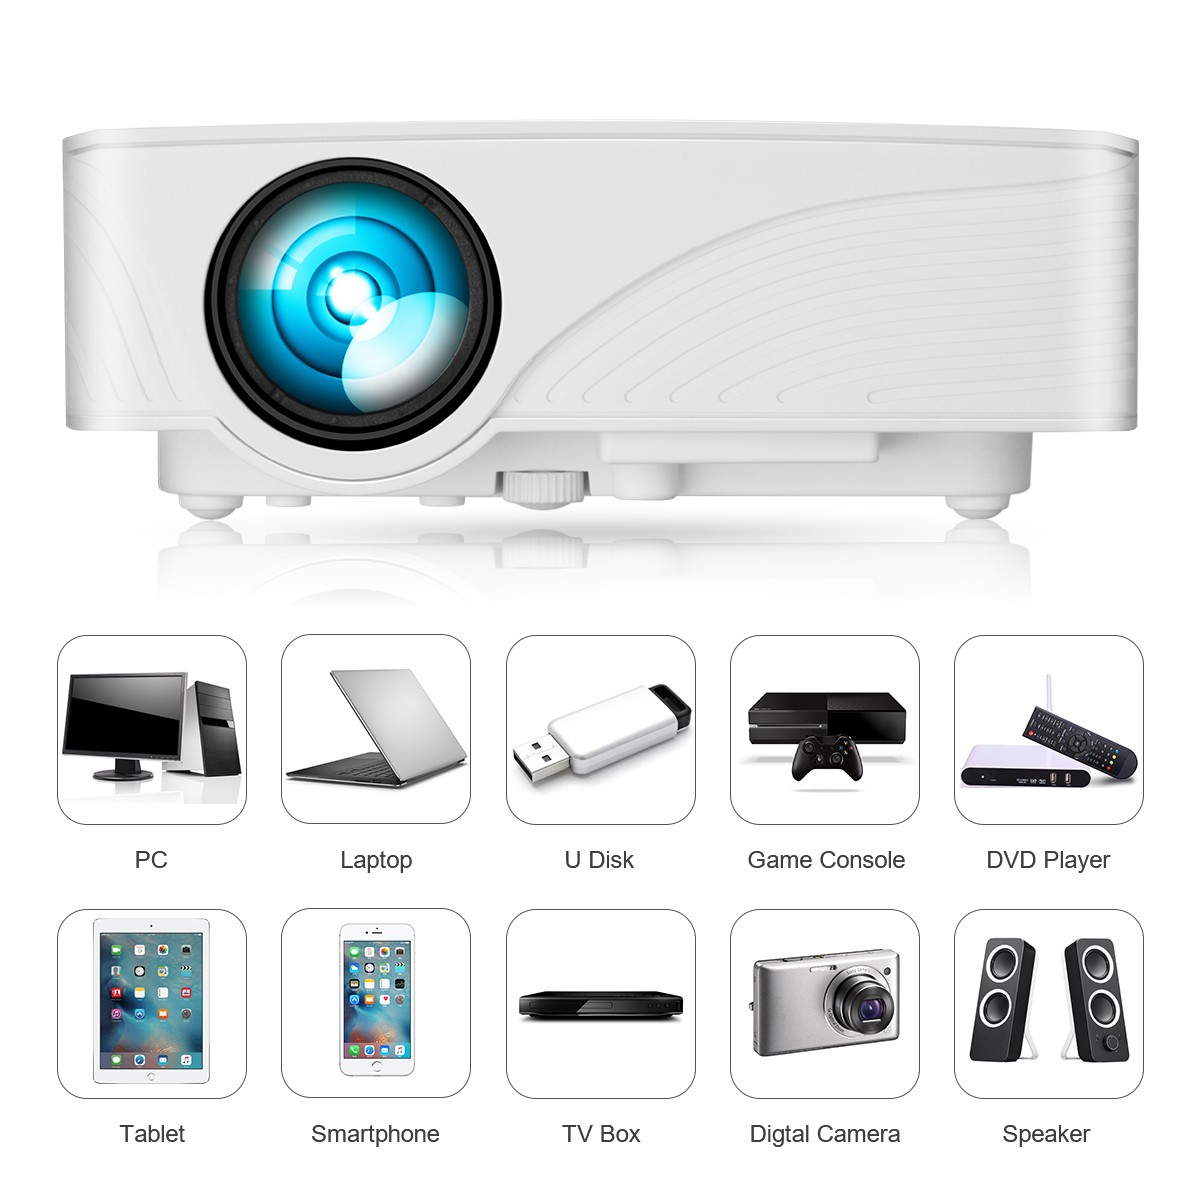 Exquizon LED GP12 Portable Projector 800*480P Support 1080P HDMI USB SD AV Connect White US PLUG